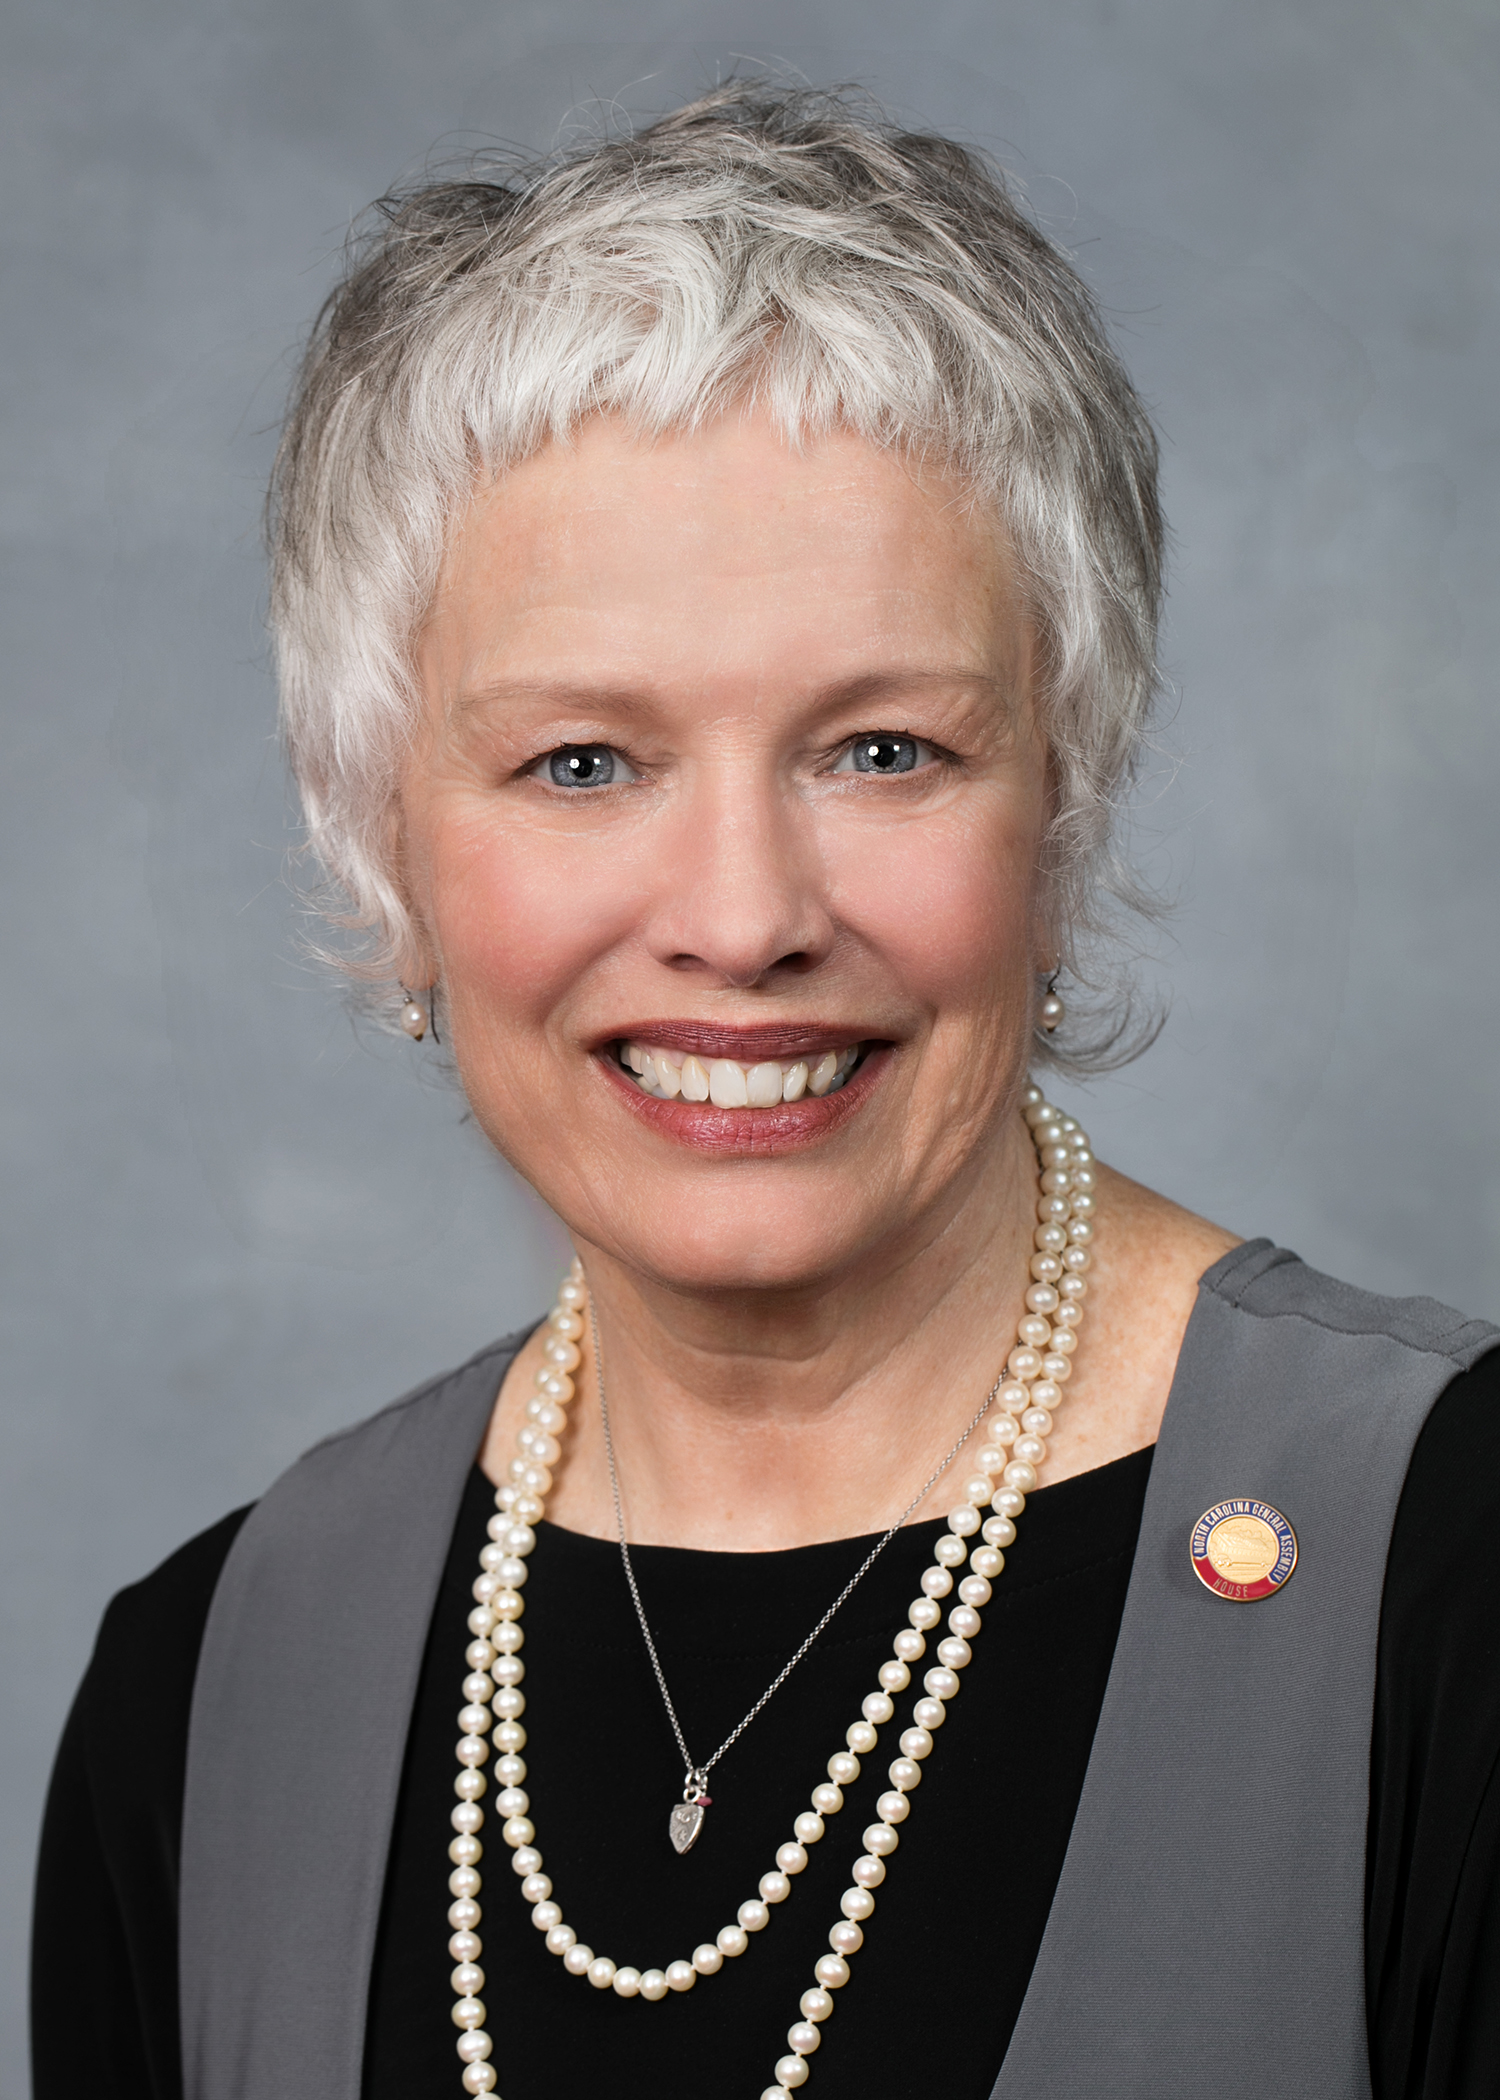 NC HOUSE REP. SUSAN FISHER - DISTRICT 114